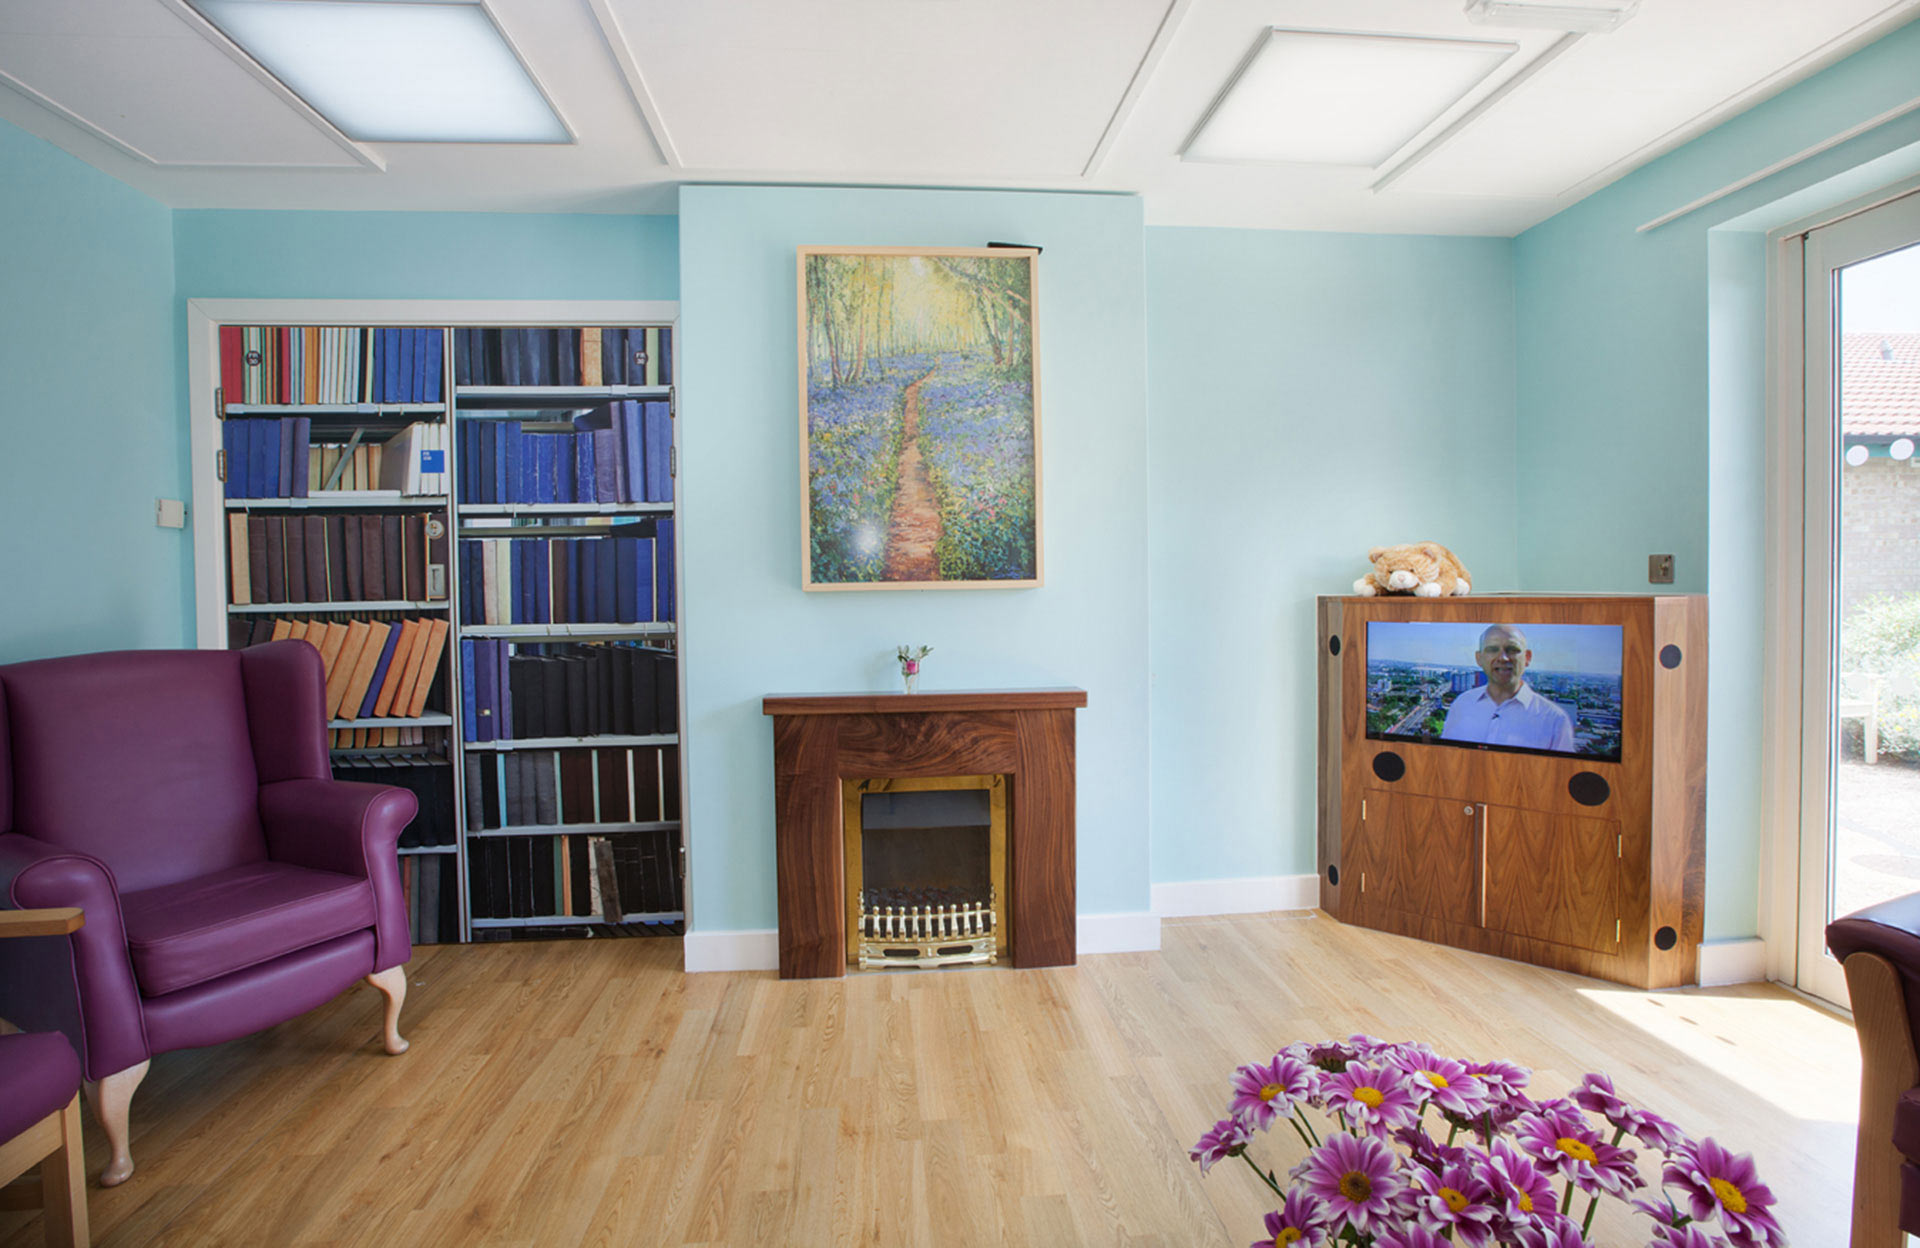 Contrasting upholstery colours to aid visually impaired patients at dementia ward